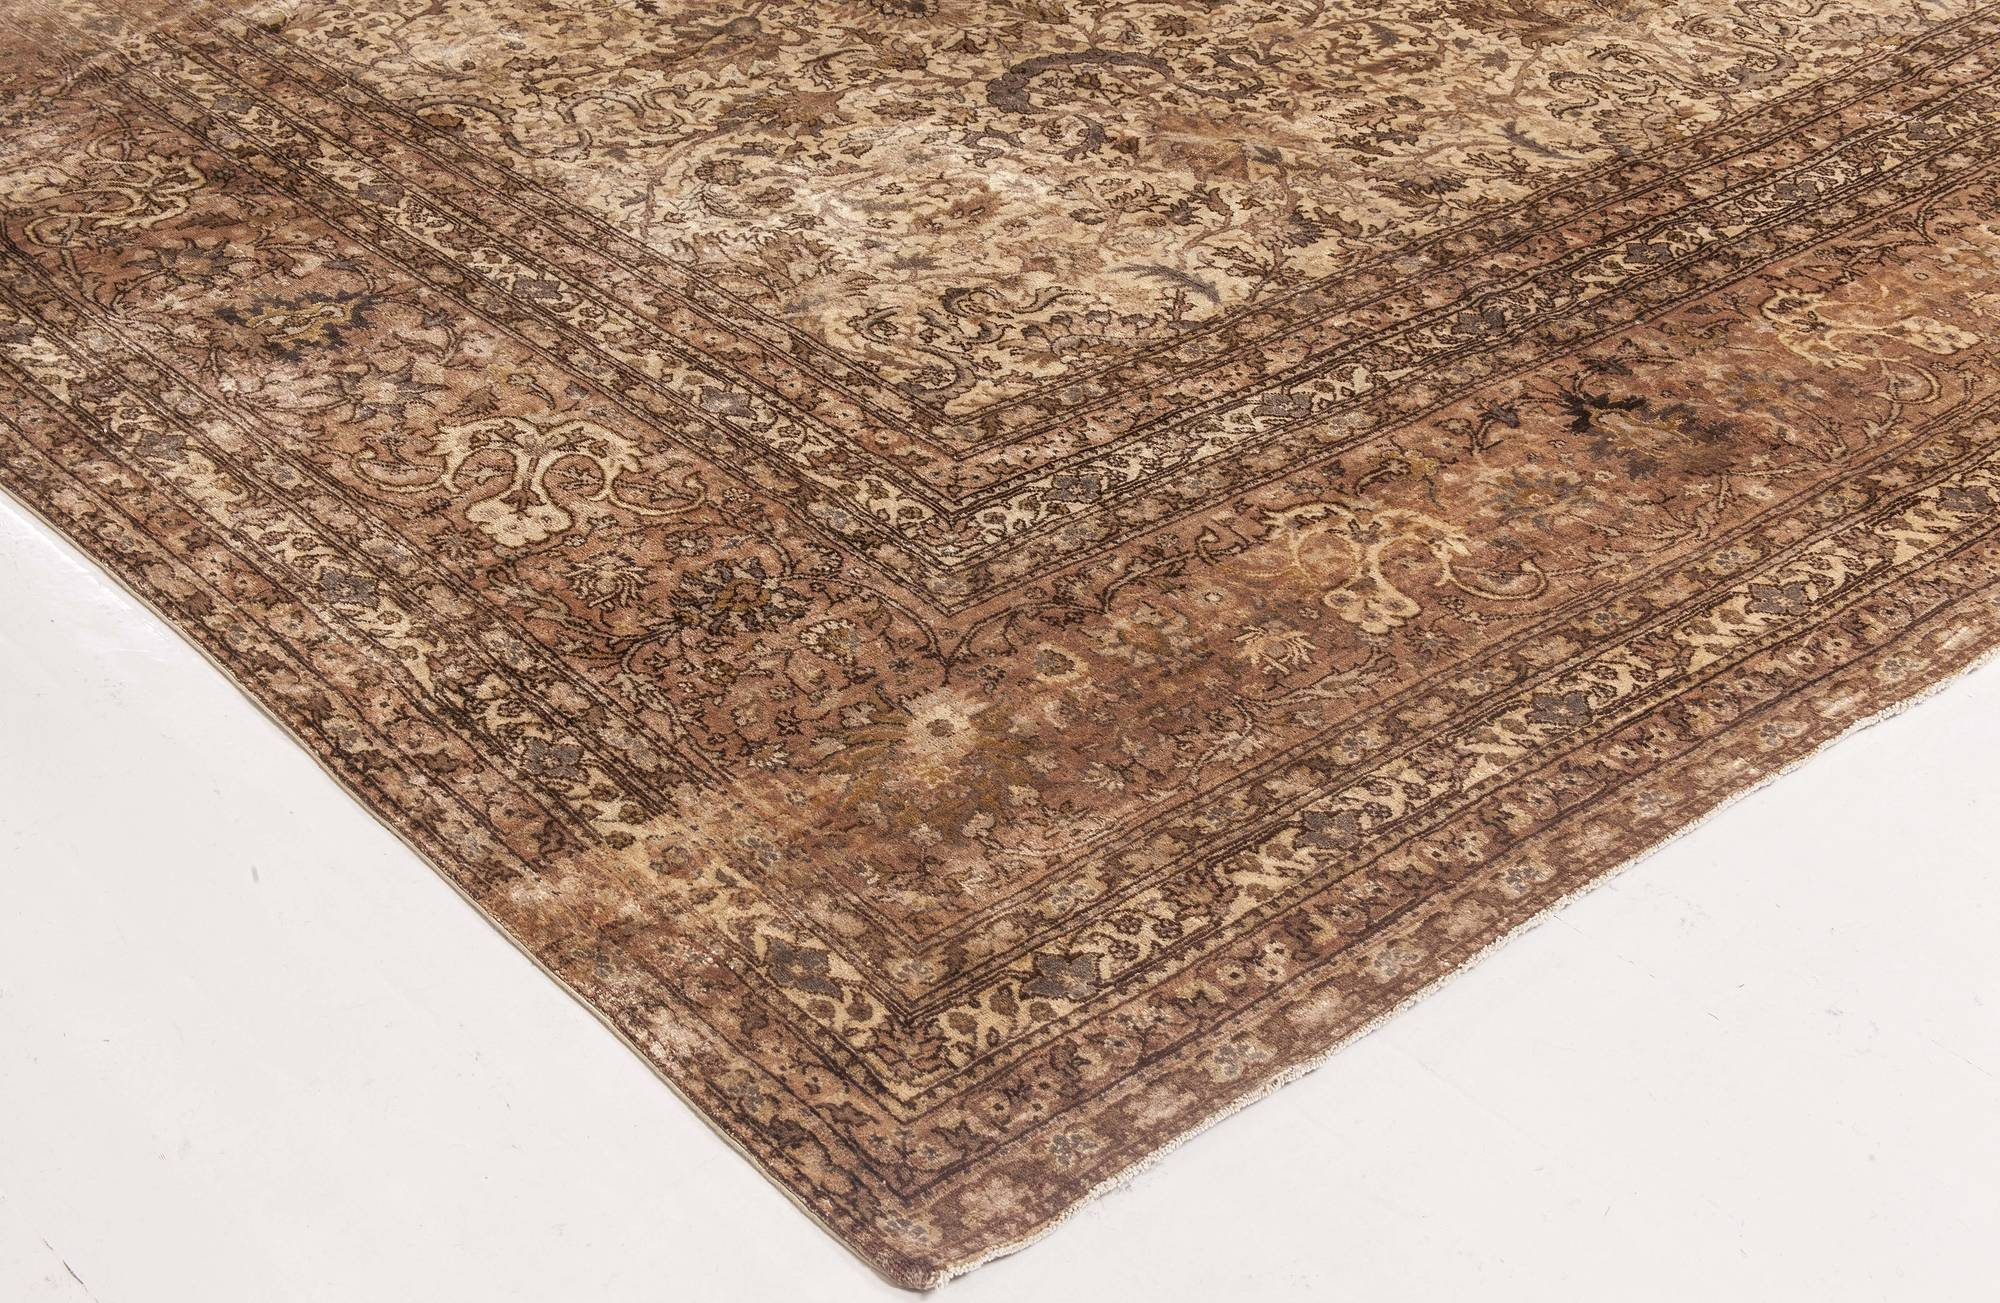 Antique Turkish Sivas Carpet BB5543